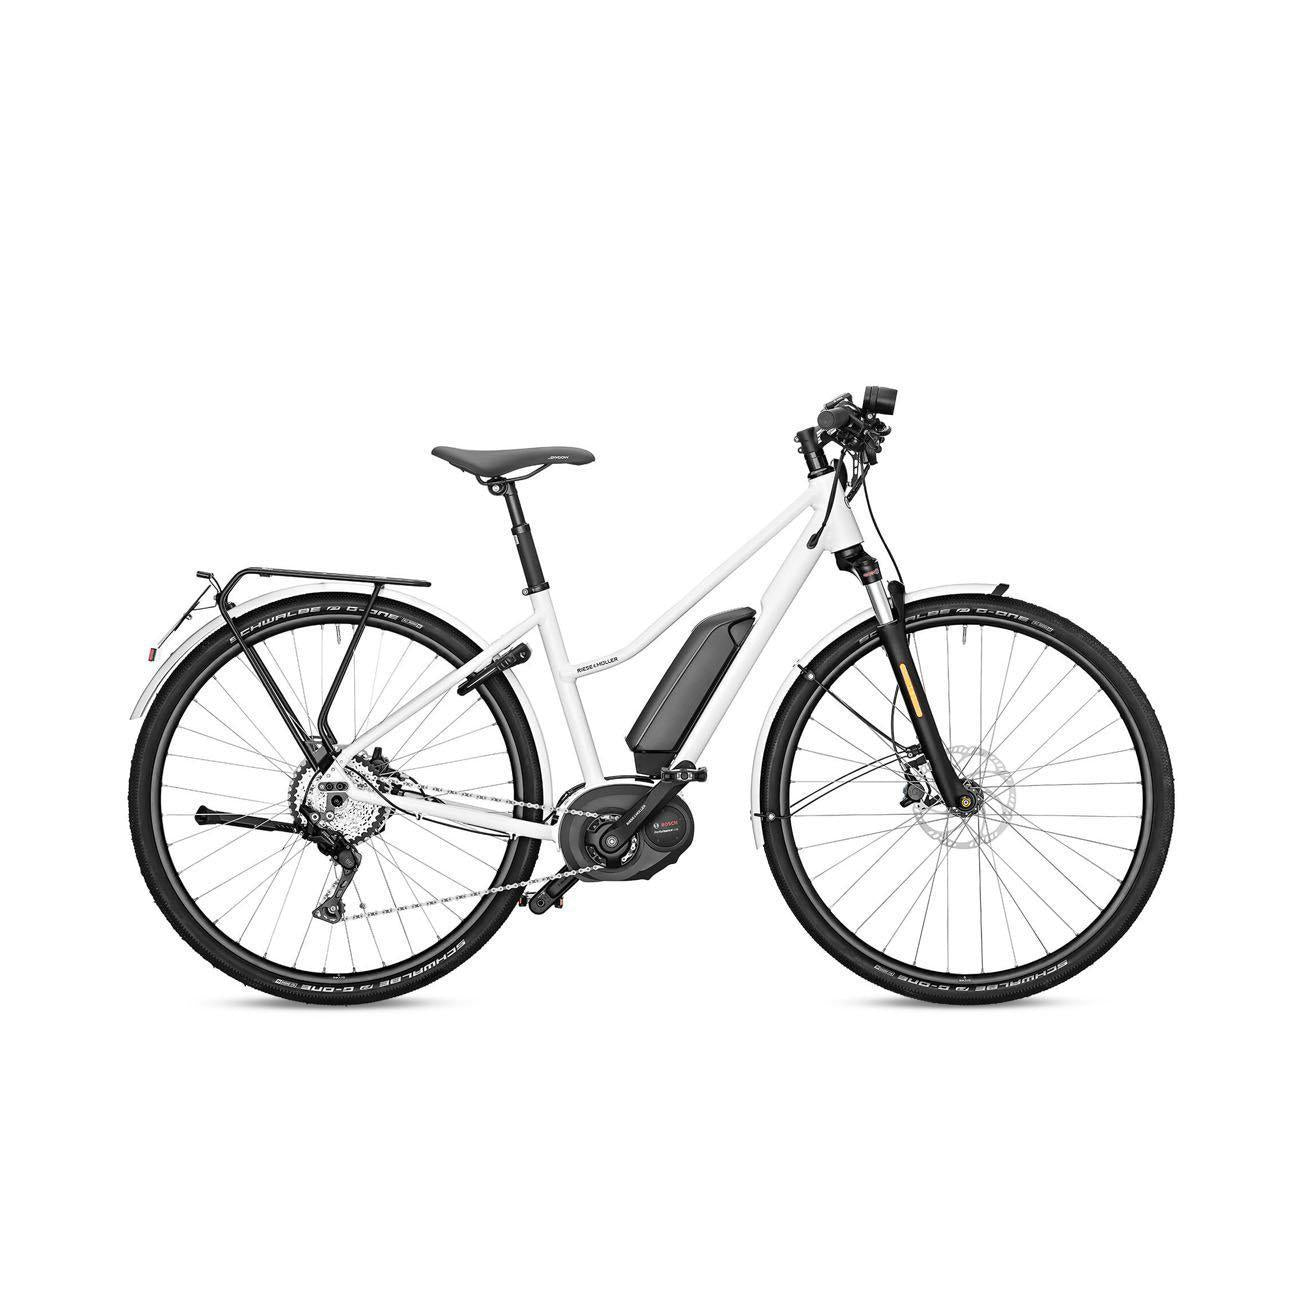 Riese & Müller Electric Bikes Roadster GT Touring HS-Oregon E-Bikes